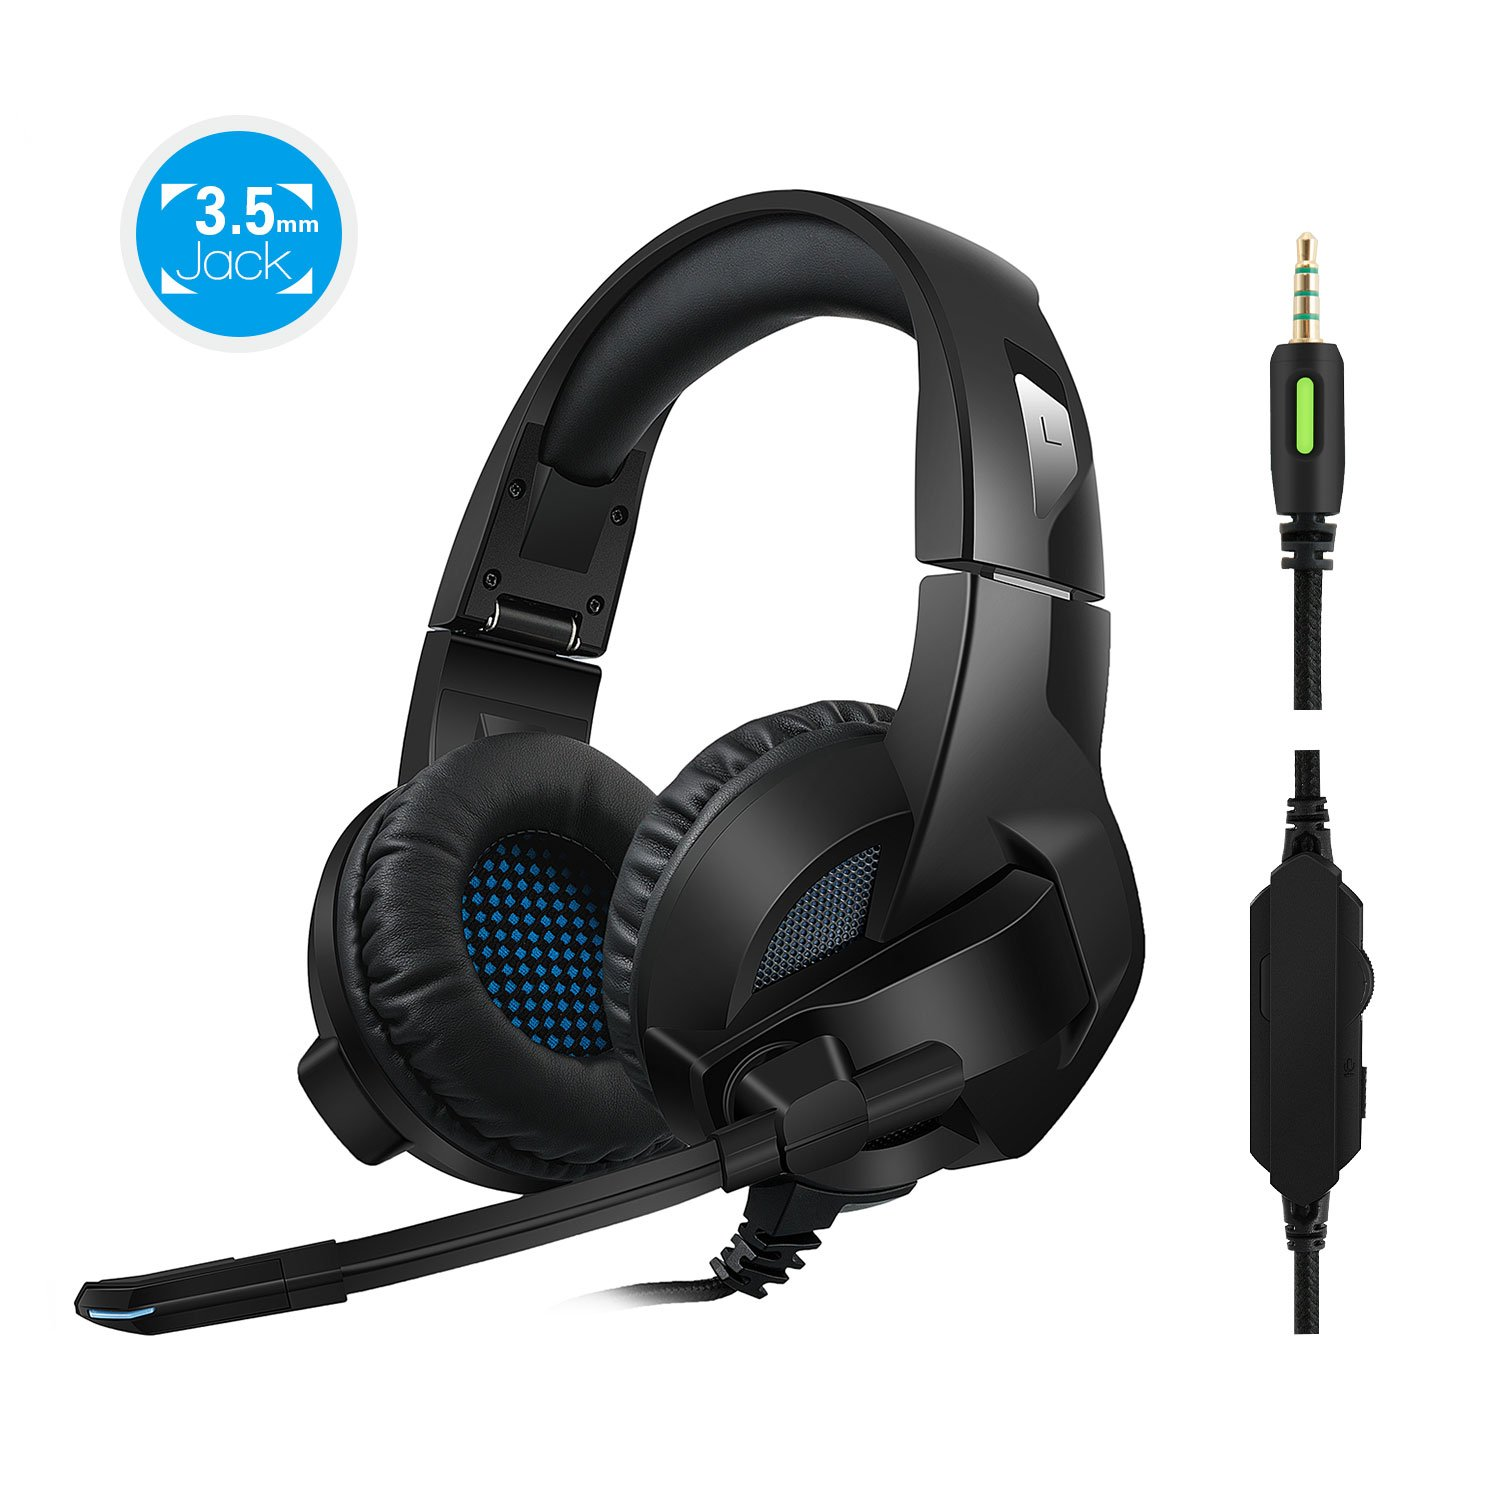 Rimila Stereo Gaming Headset for playstation 3, playstation 4, PC, Xbox One Controller, Noise Cancelling Over Ear Headphones with Mic, Bass Surround, Soft Memory Earmuffs for Laptop Mac Switch Games